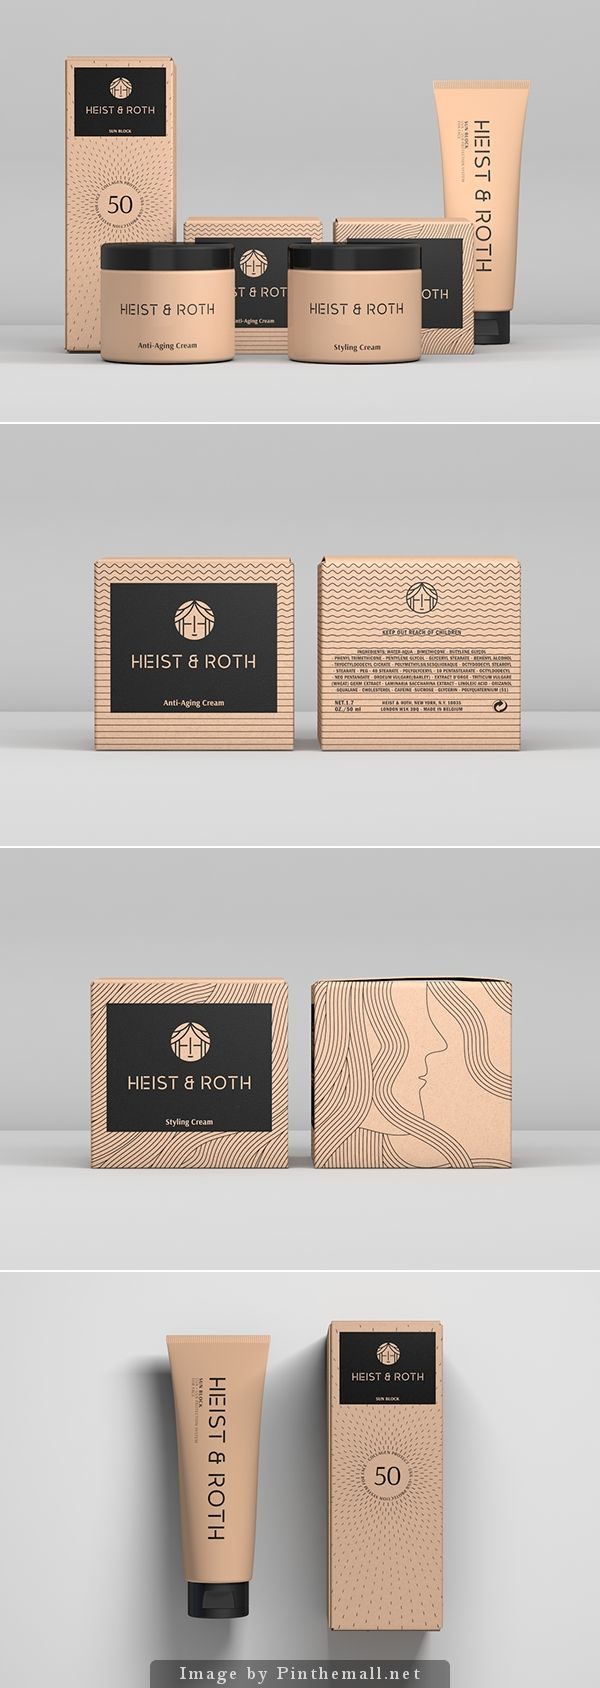 https://www.behance.net/gallery/18316805/Heist-Roth... - a grouped images picture - Pin Them All